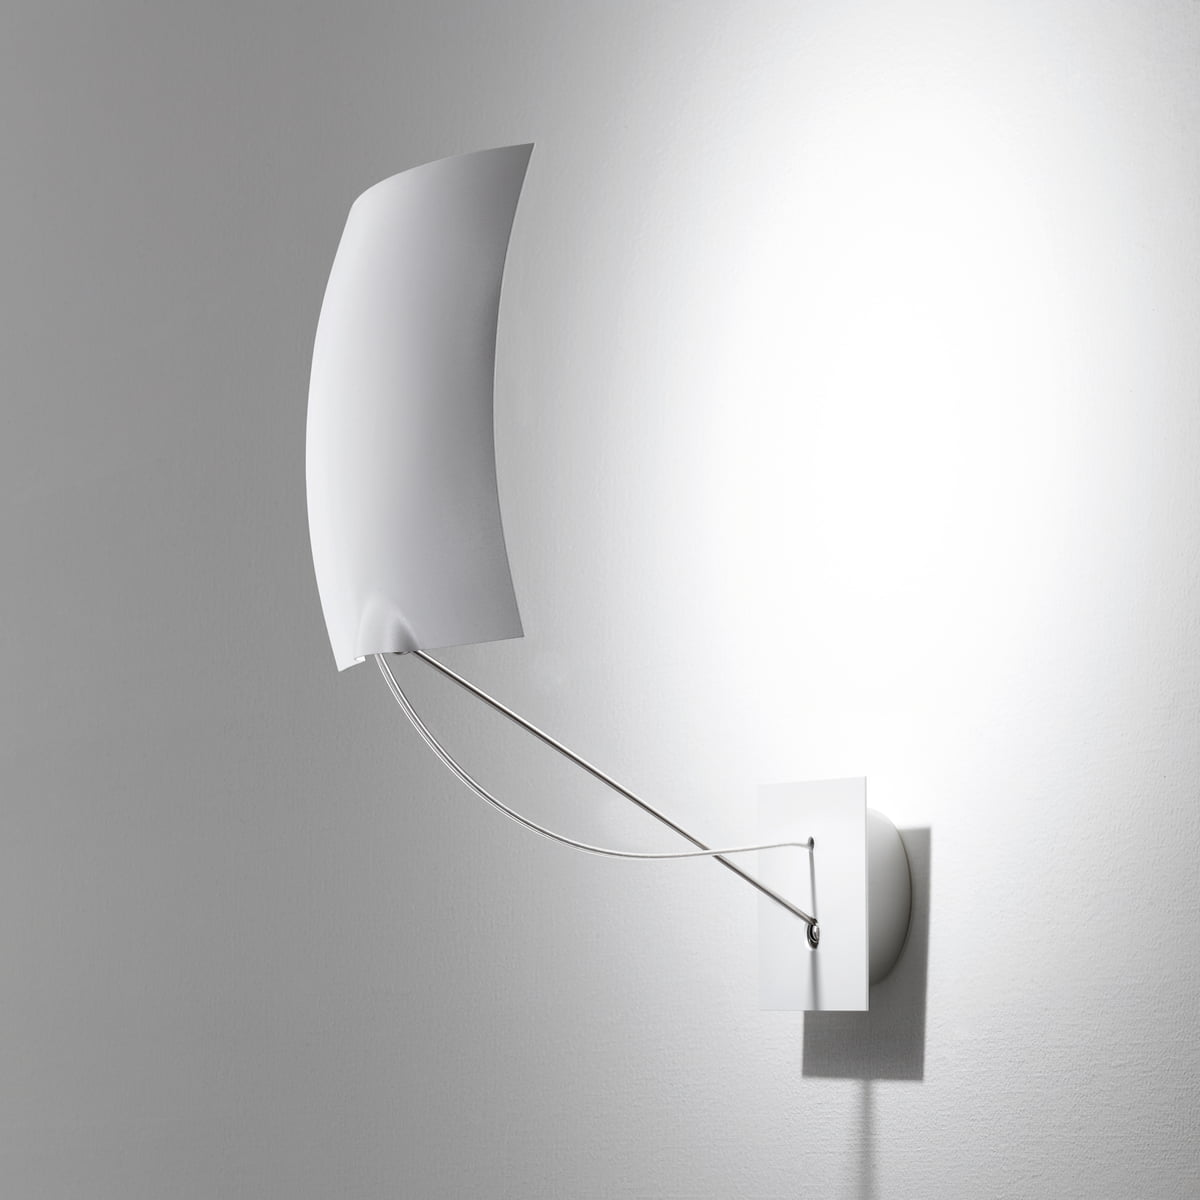 18 x 18 wall lamp by ingo maurer in the shop. Black Bedroom Furniture Sets. Home Design Ideas